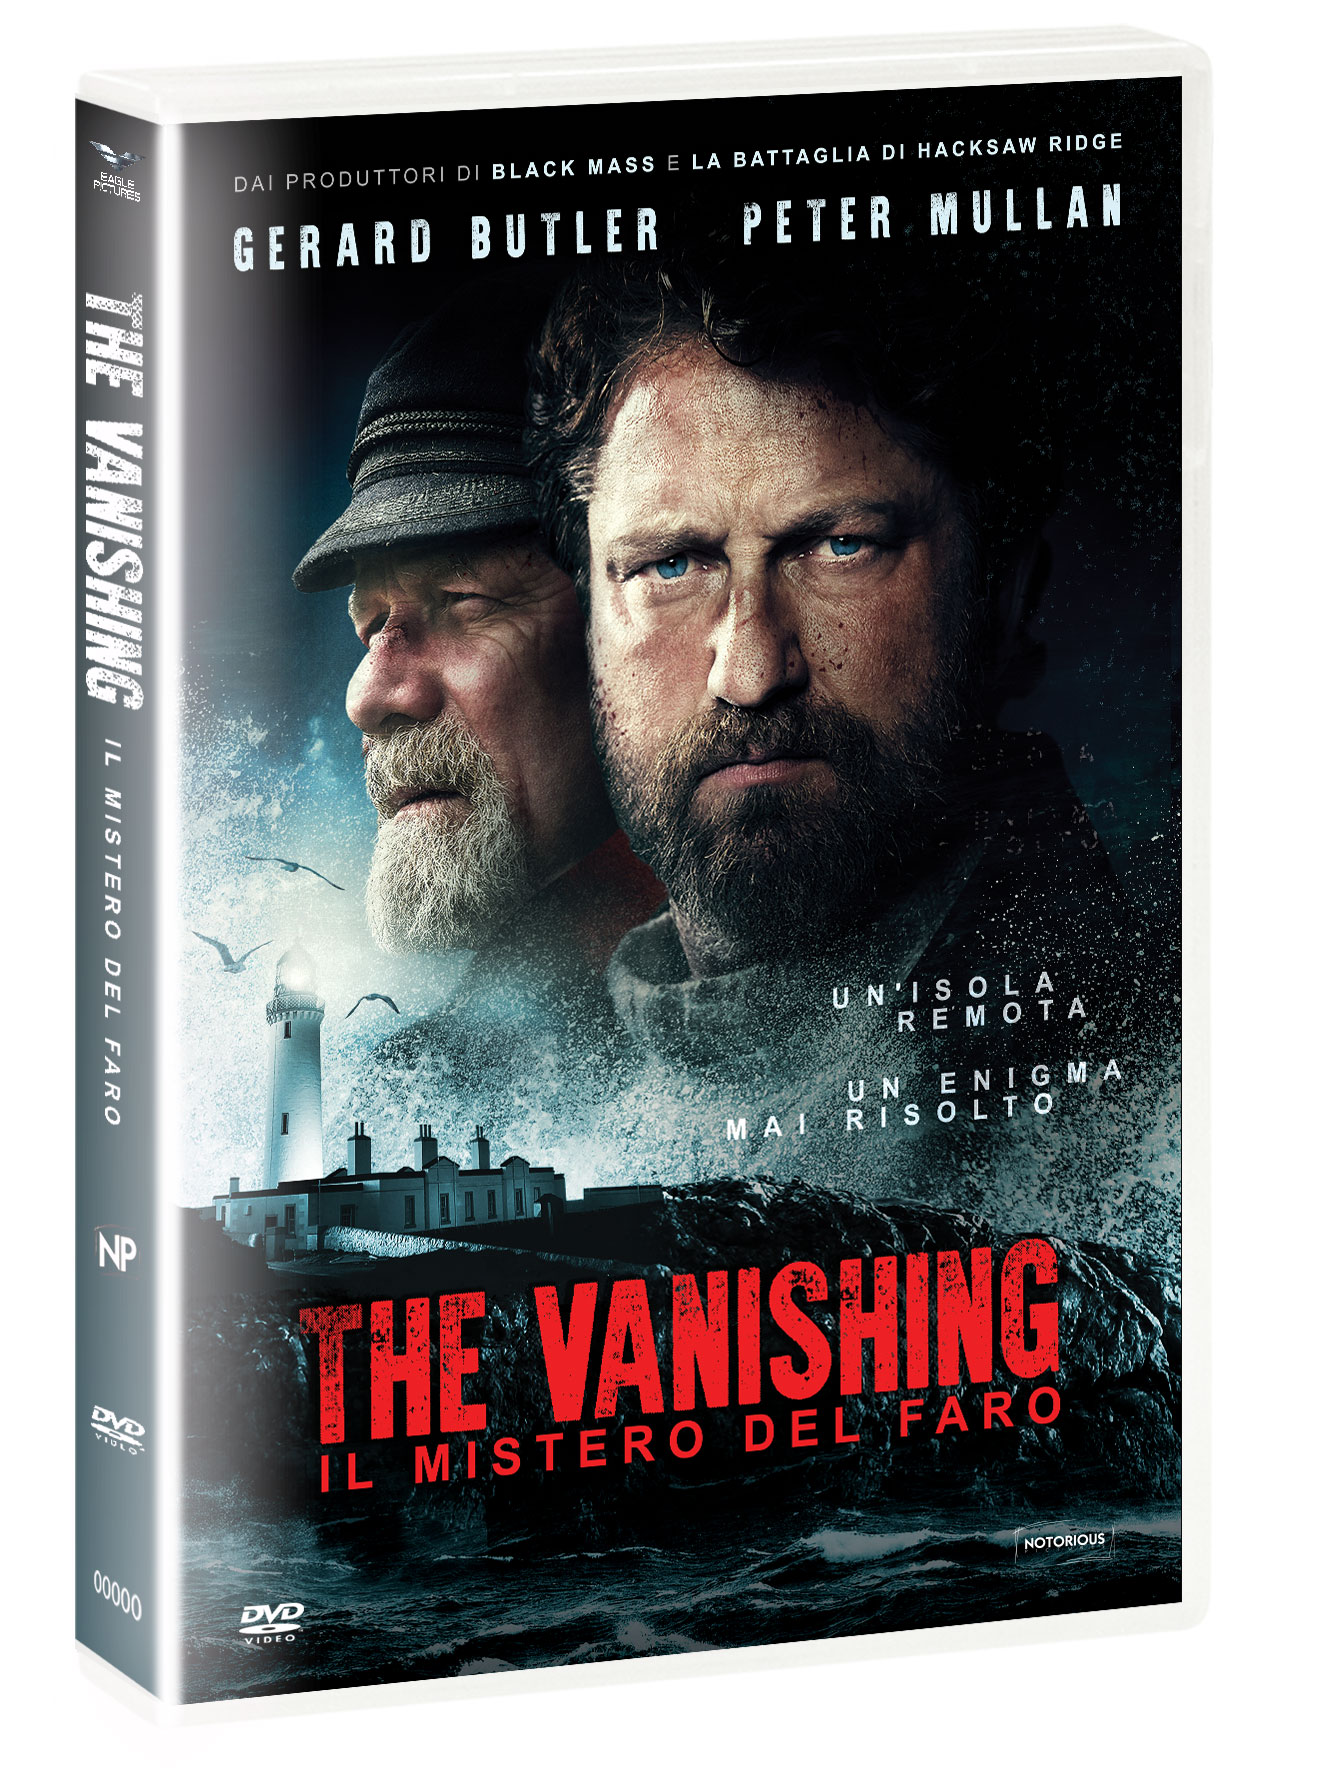 THE VANISHING - IL MISTERO DEL FARO (DVD)